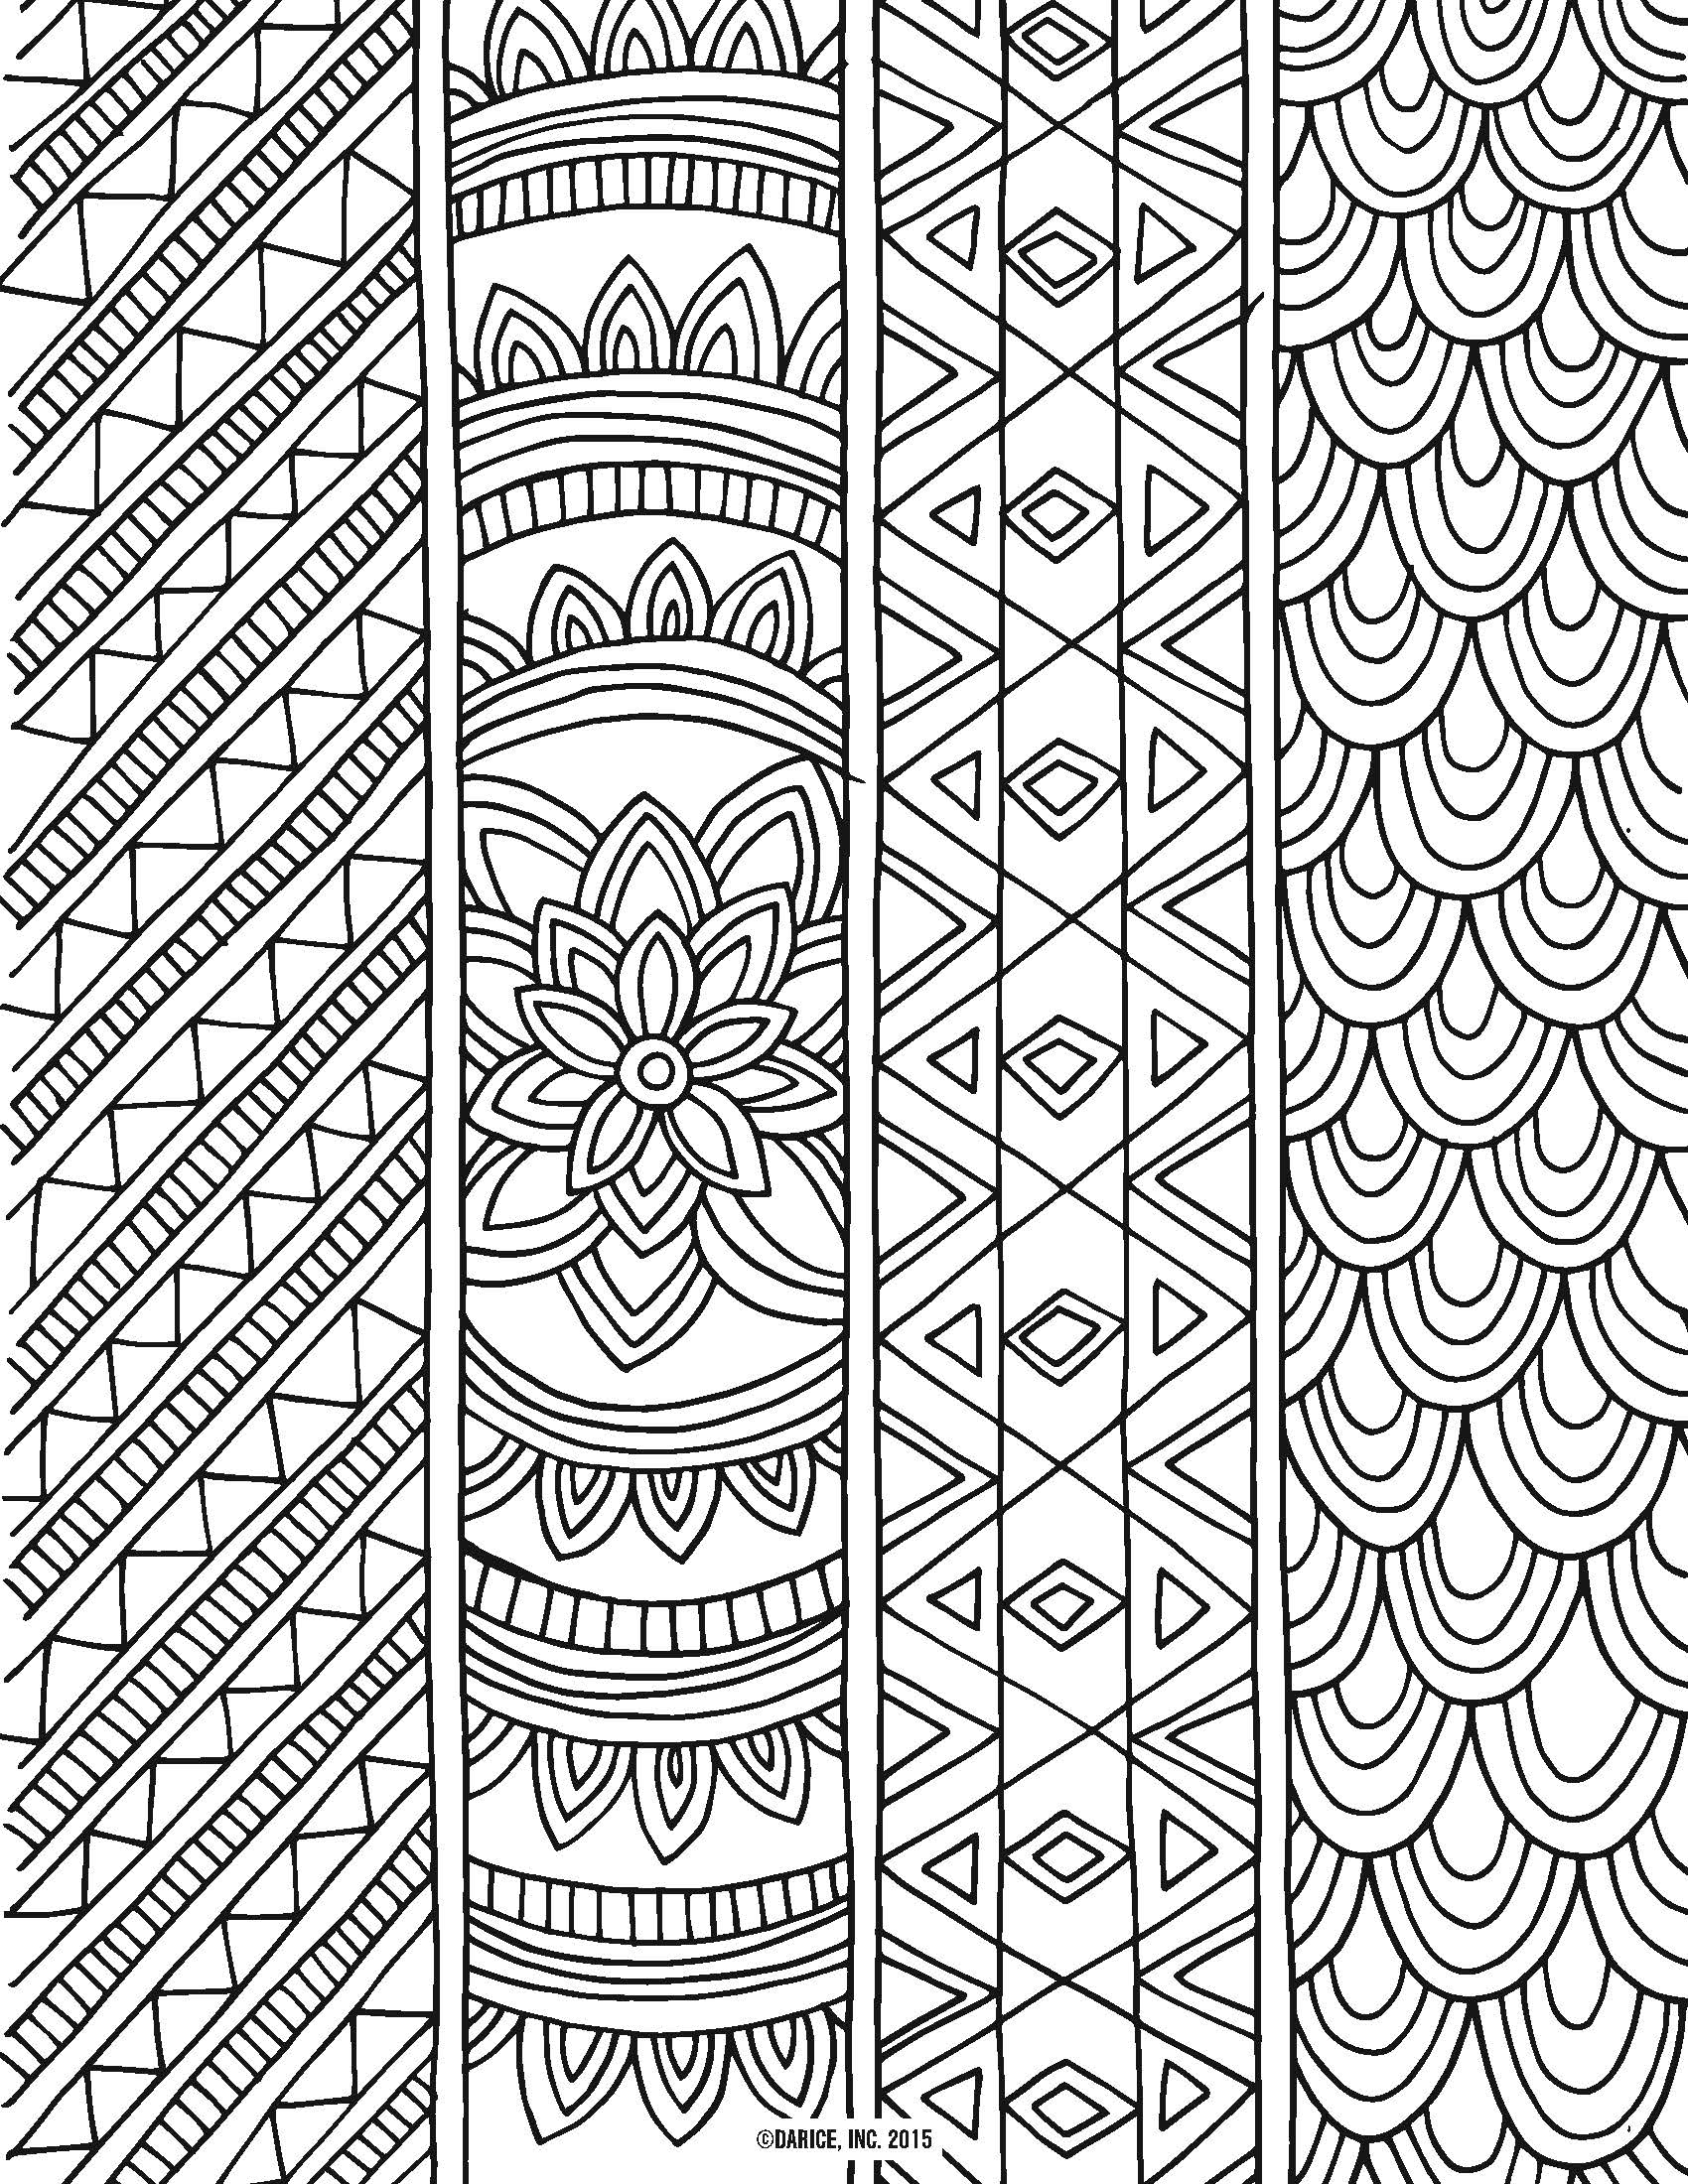 9 Free Printable Adult Coloring Pages | Pat Catan's Blog - Free Printable Coloring Books For Adults